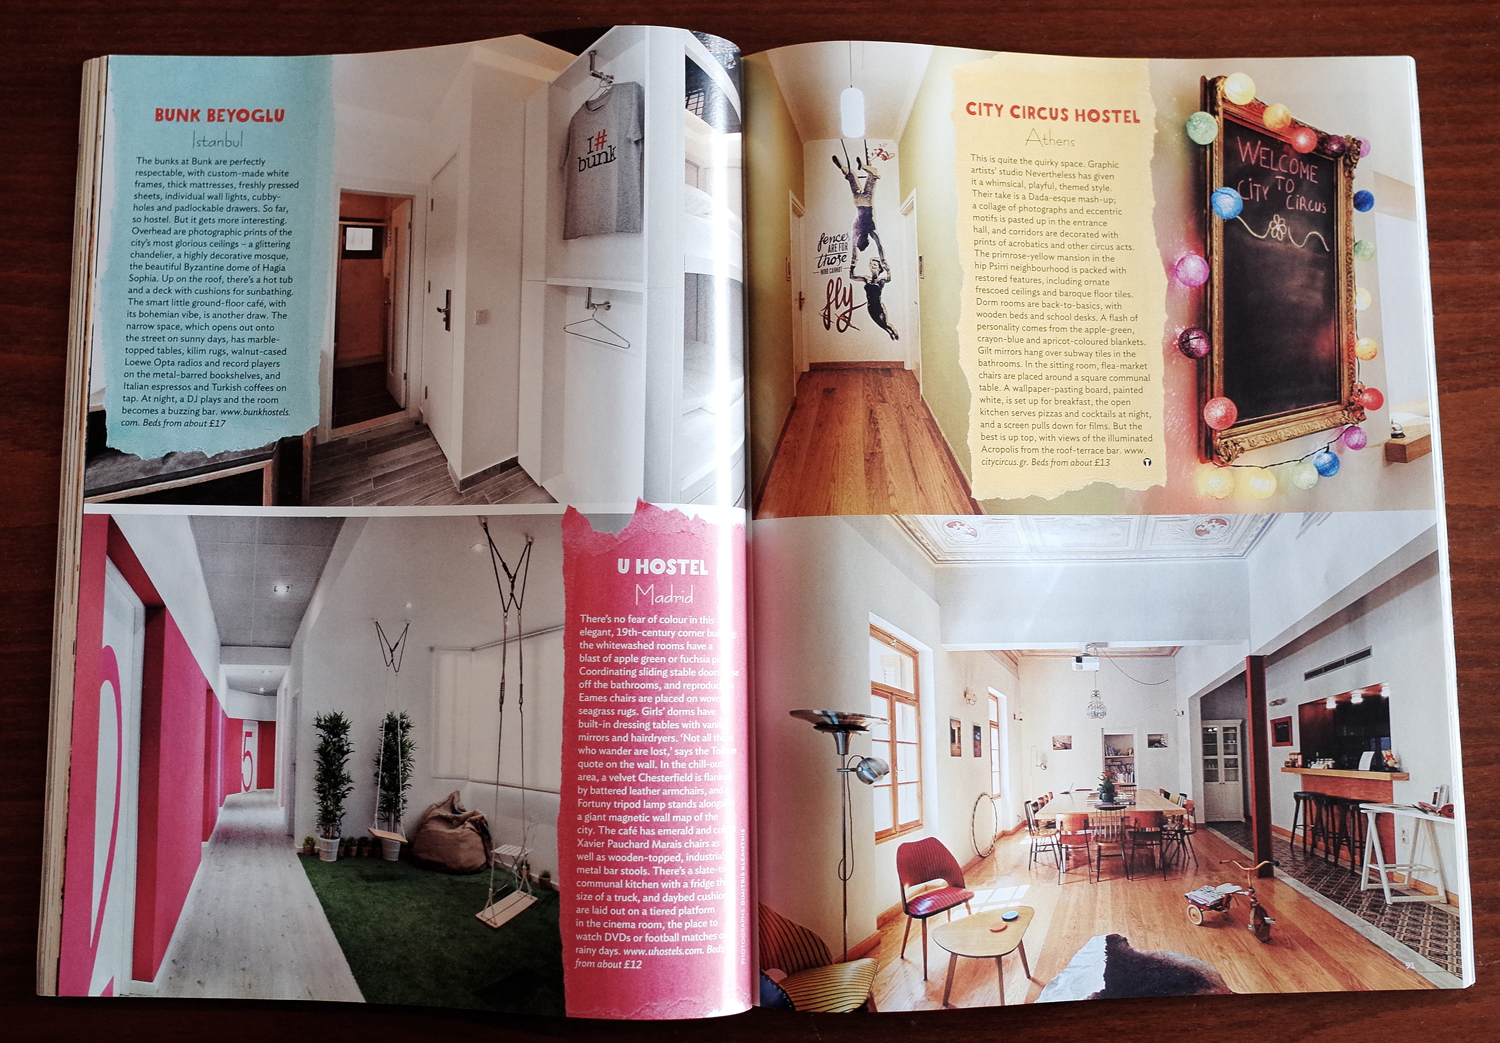 City Circus Hostel in  Conde Nast Traveller , 01/2014